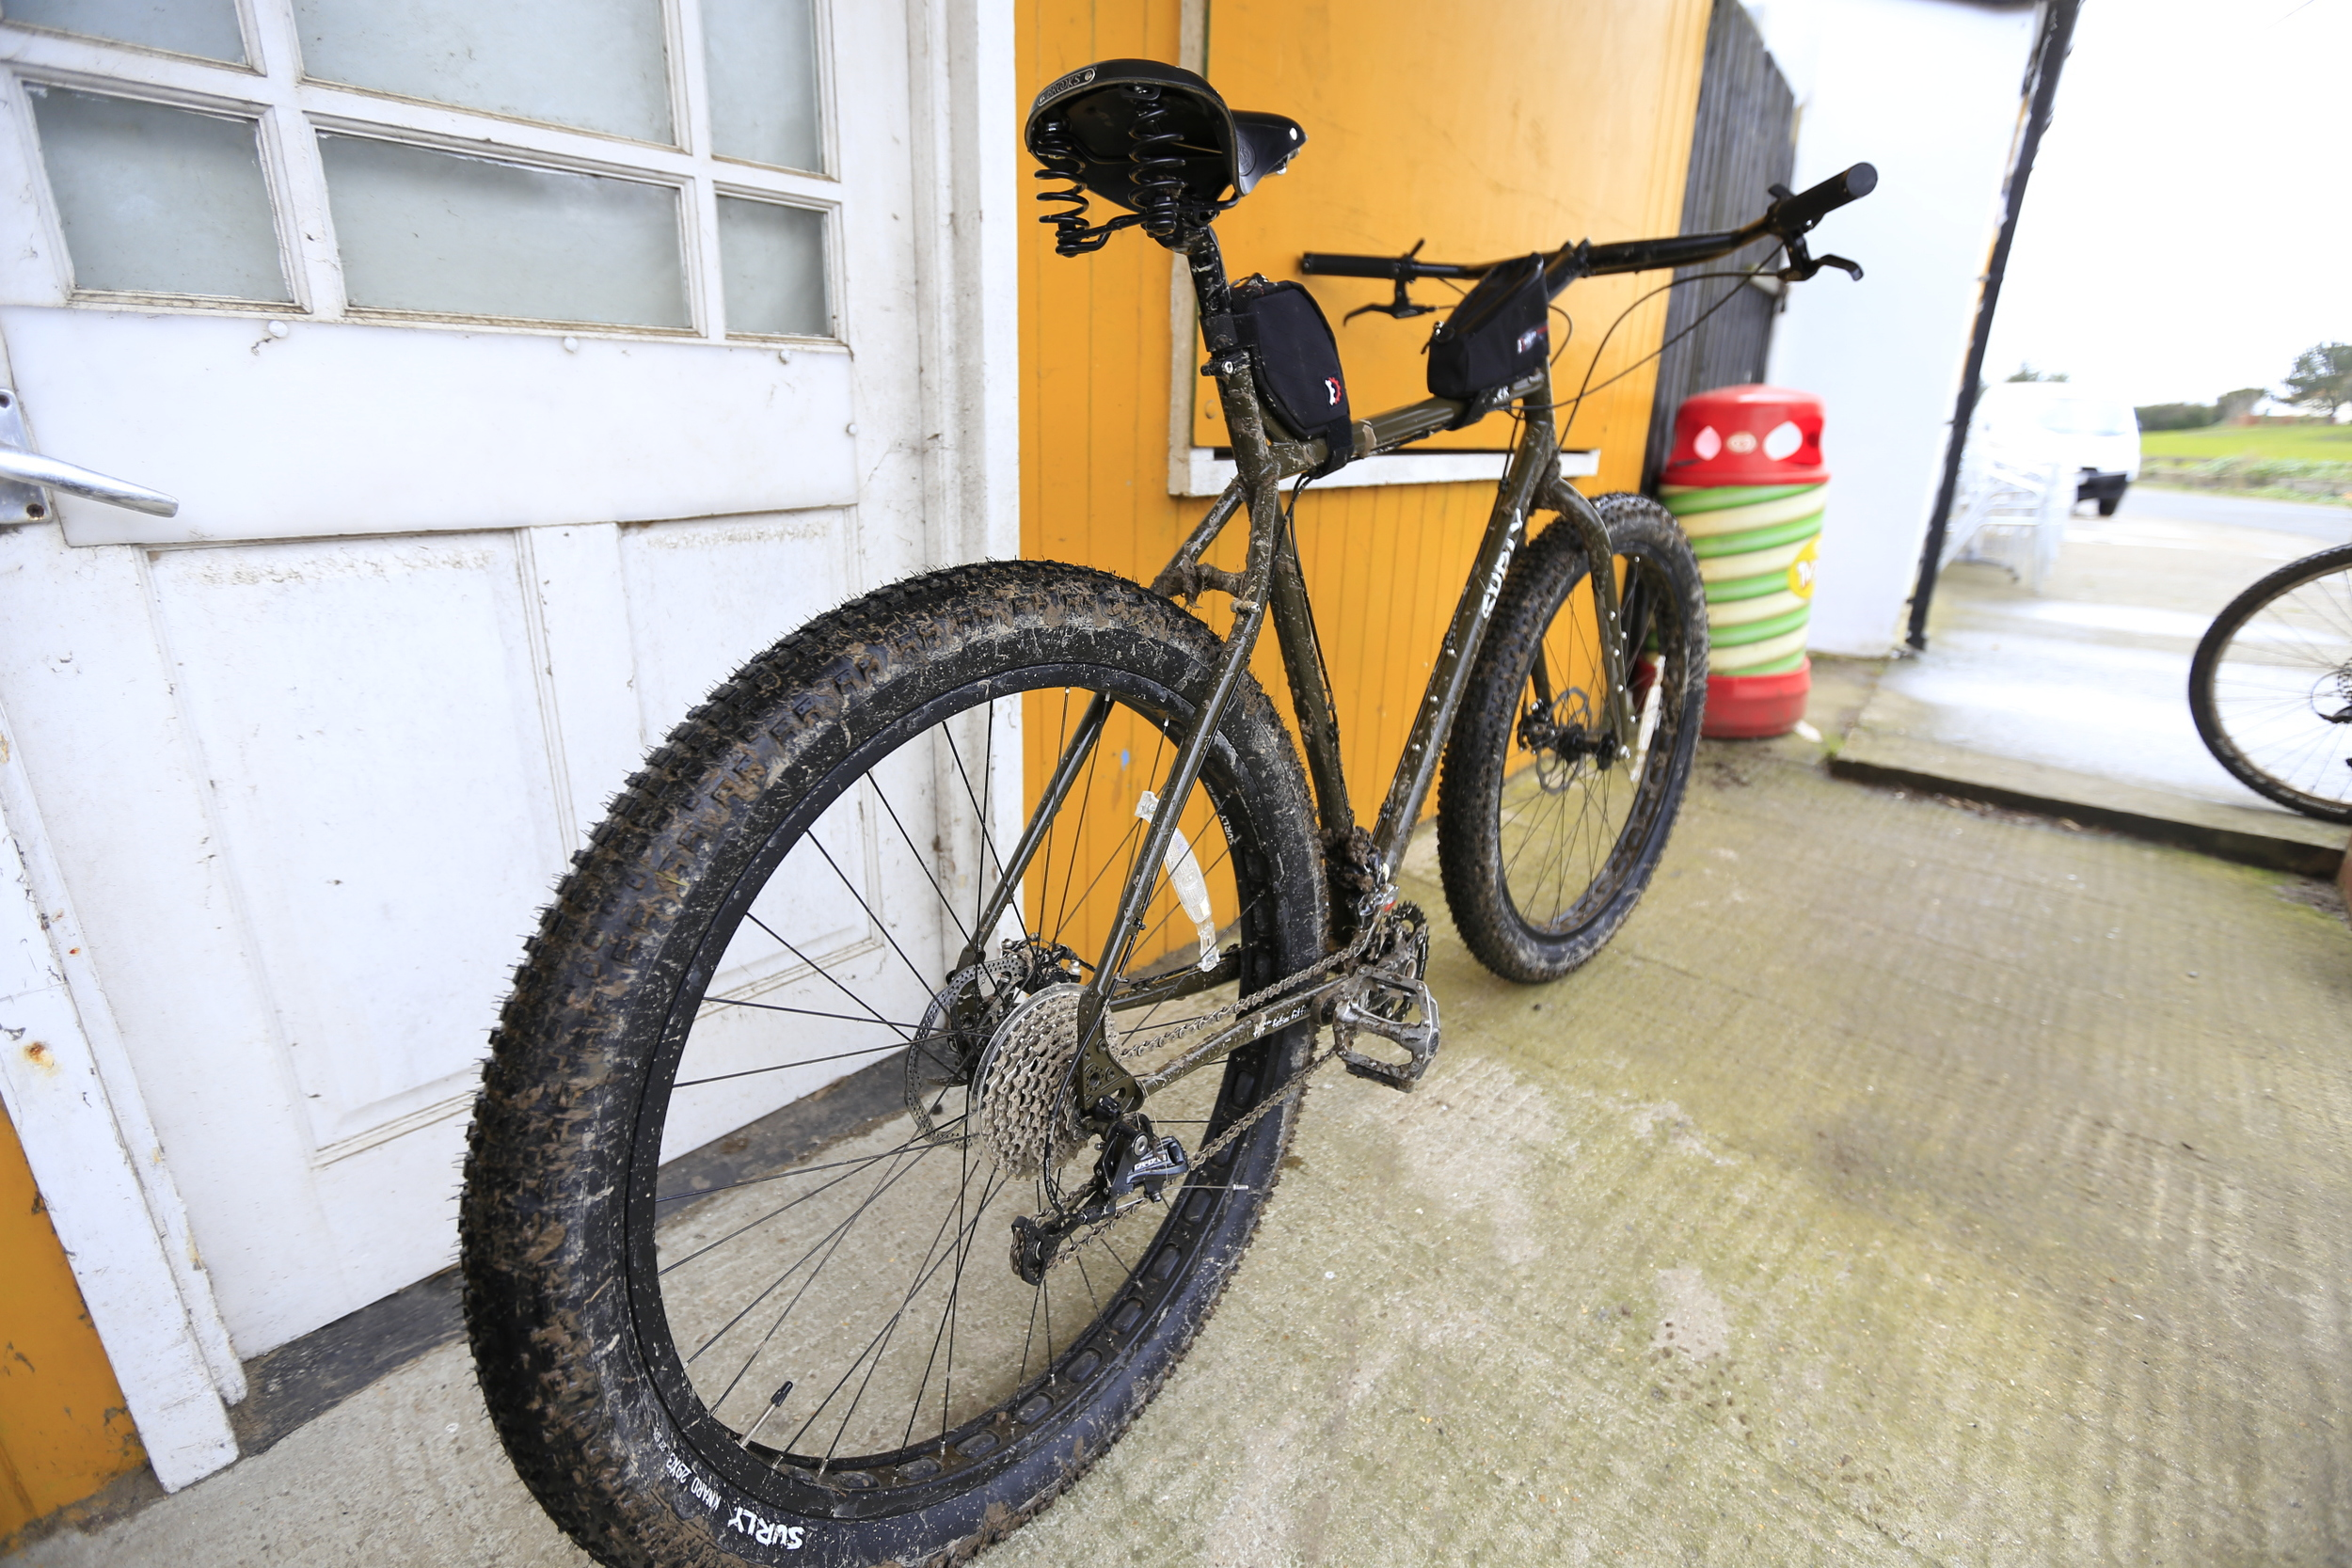 "surly ecr, surly bikes, ecr, surly, revelate designs, fat bike, fat biking, mtb, 29er, knards, 3"" tyres, photography, gear review, blog, bicycle touring apocalypse"